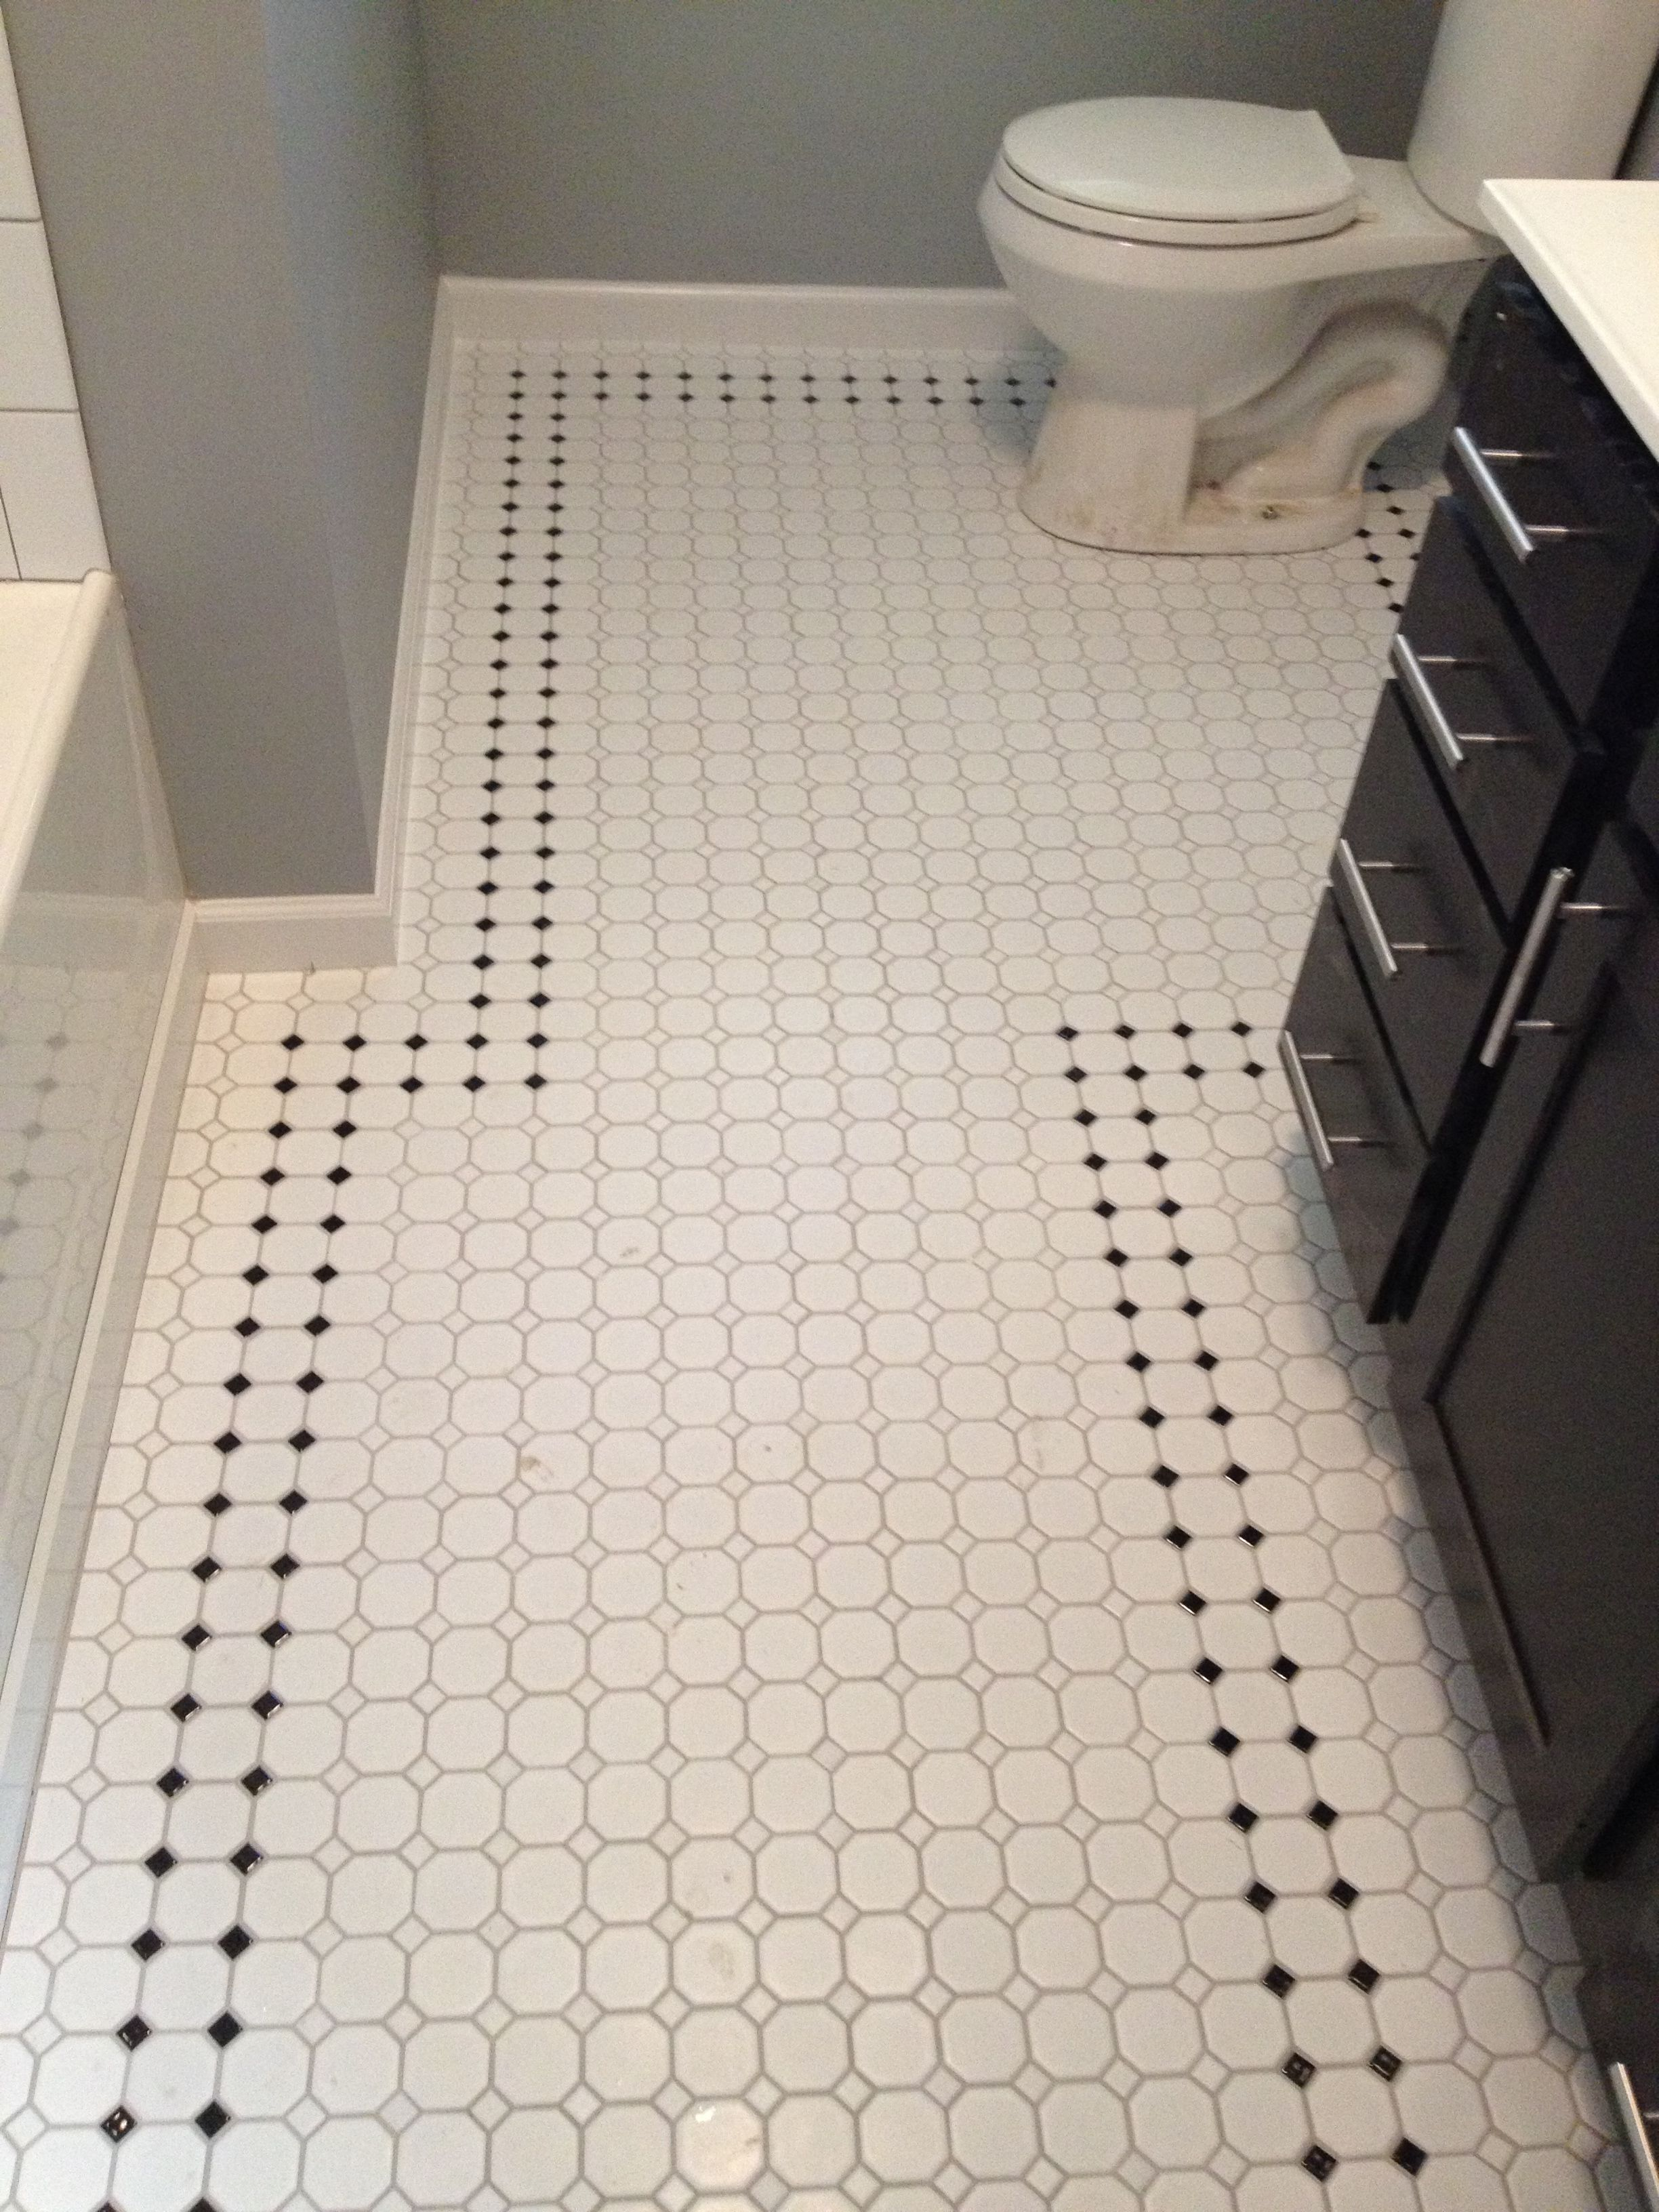 Shower Floor Tiles Which Why And How: Retro Inspired Octagon And Dot Bathroom Floor Tile.